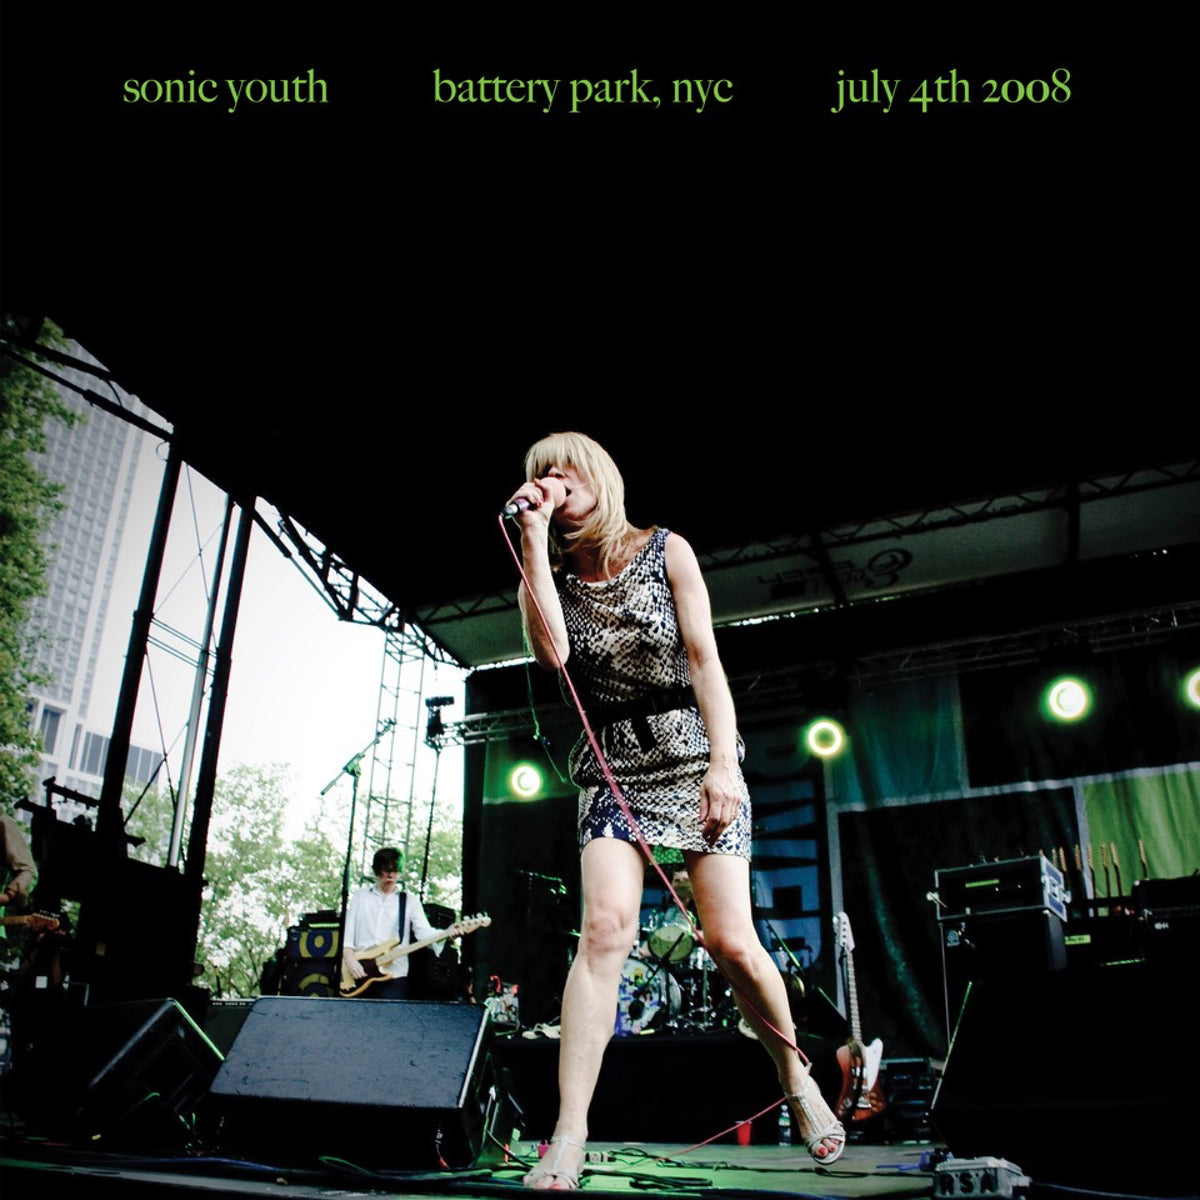 Sonic Youth - Live at Battery Park, NYC: July 4th, 2008 LP